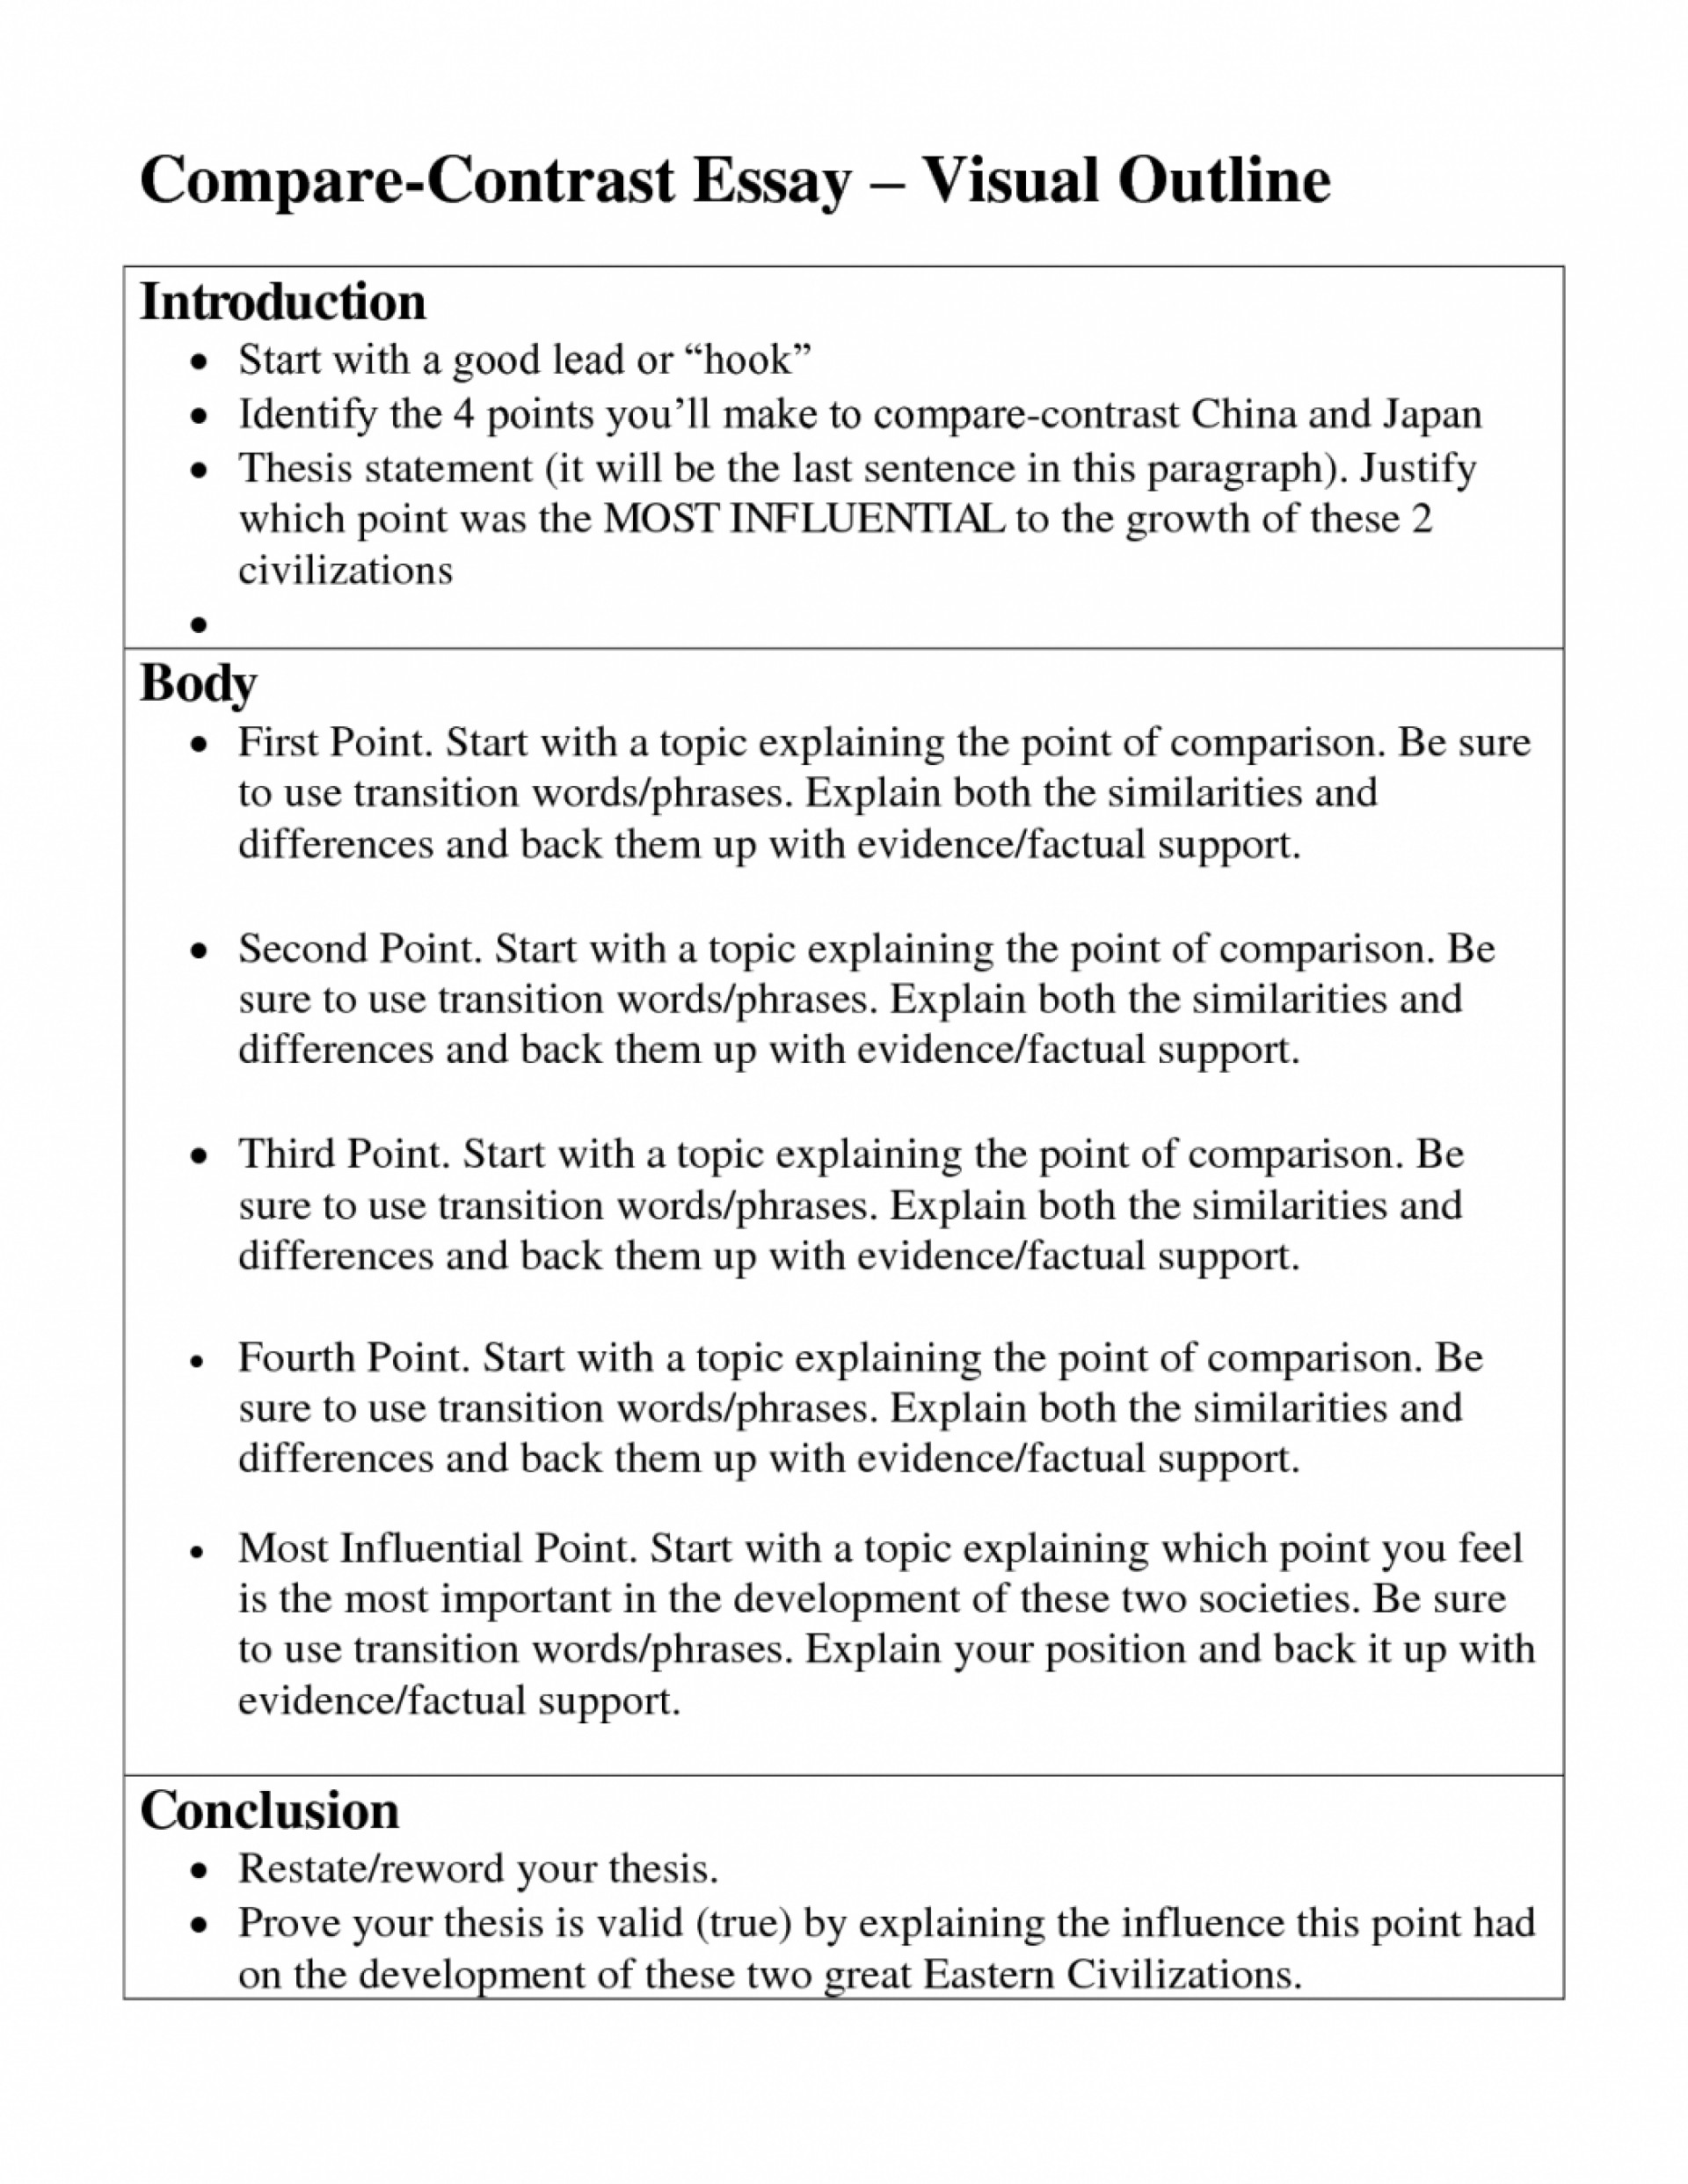 009 Compare And Contrast Essay Topics For High School Students English College Pdf Research Paper 1048x1356 Fantastic Ielts 1920